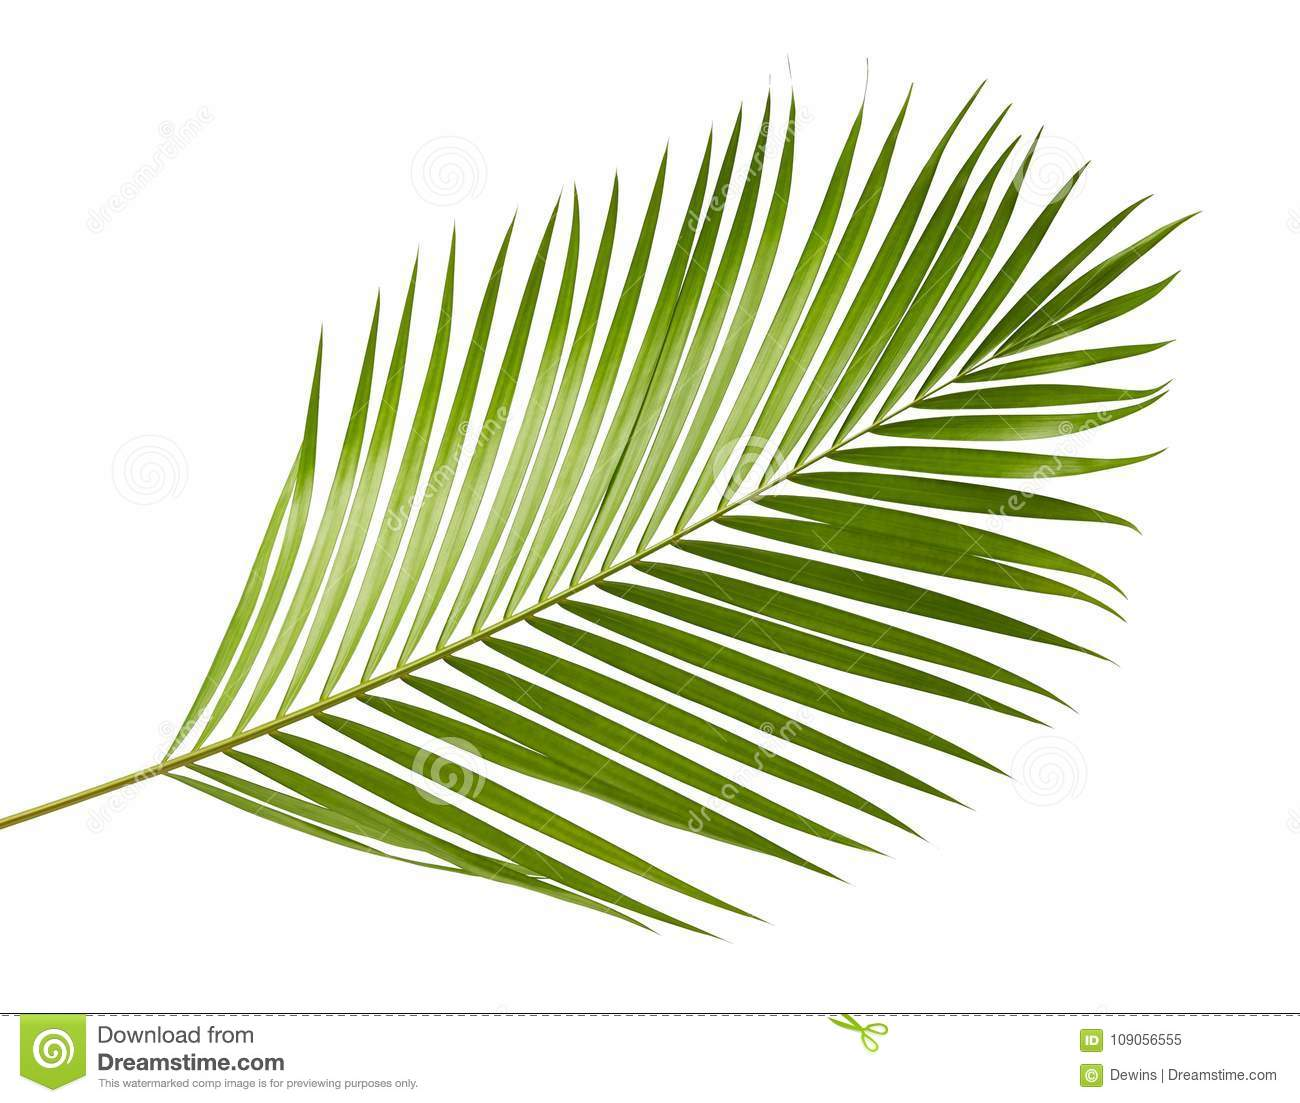 Yellow palm leaves Dypsis lutescens or Golden cane palm, Areca palm leaves, Tropical foliage isolated on white background